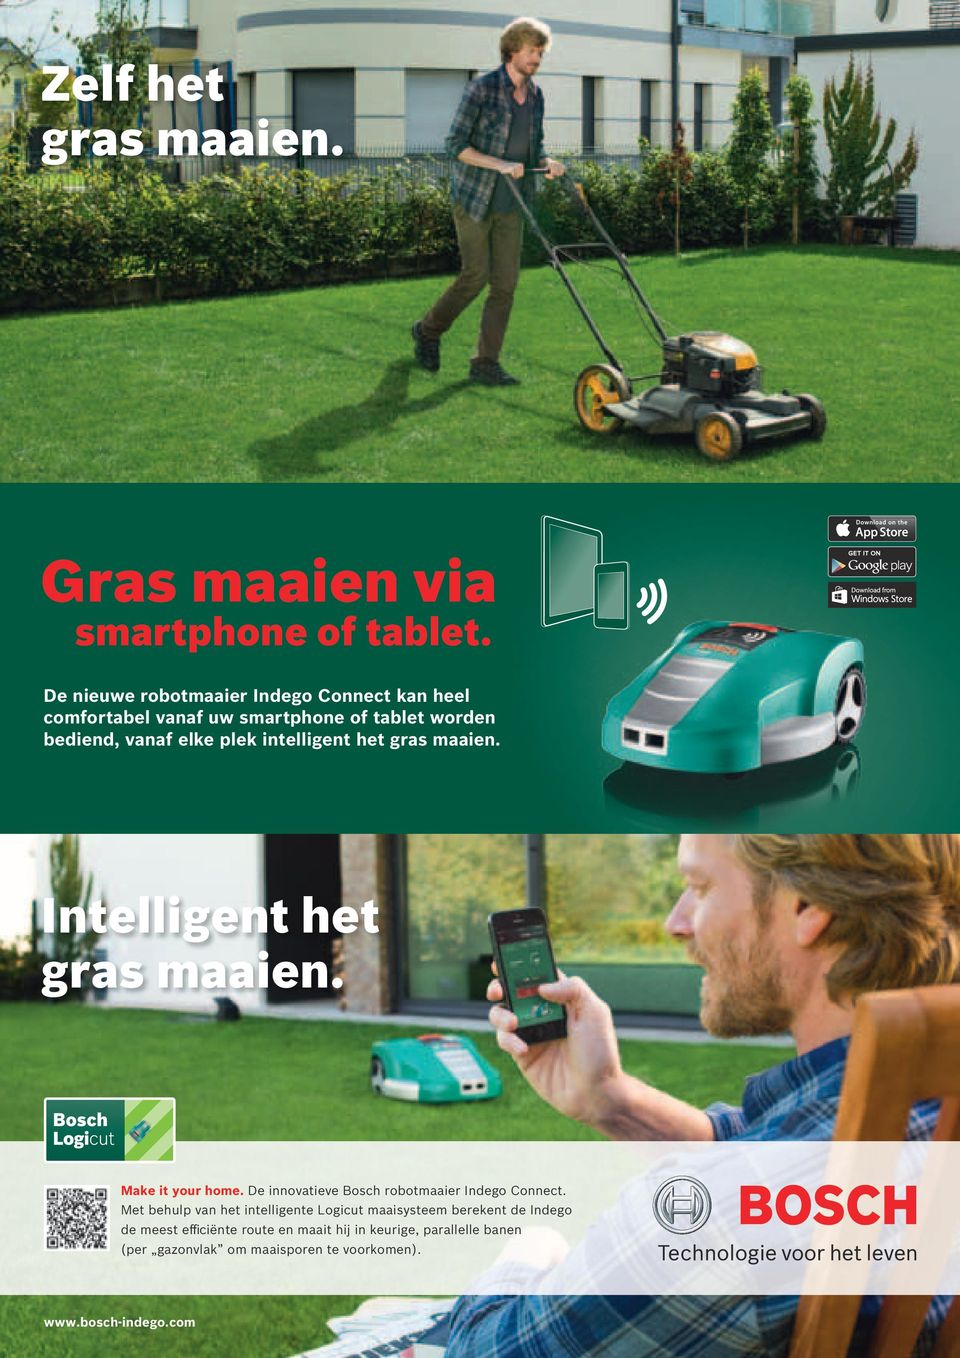 intelligent het gras maaien. Intelligent het gras maaien. Make it your home. De innovatieve Bosch robotmaaier Indego Connect.